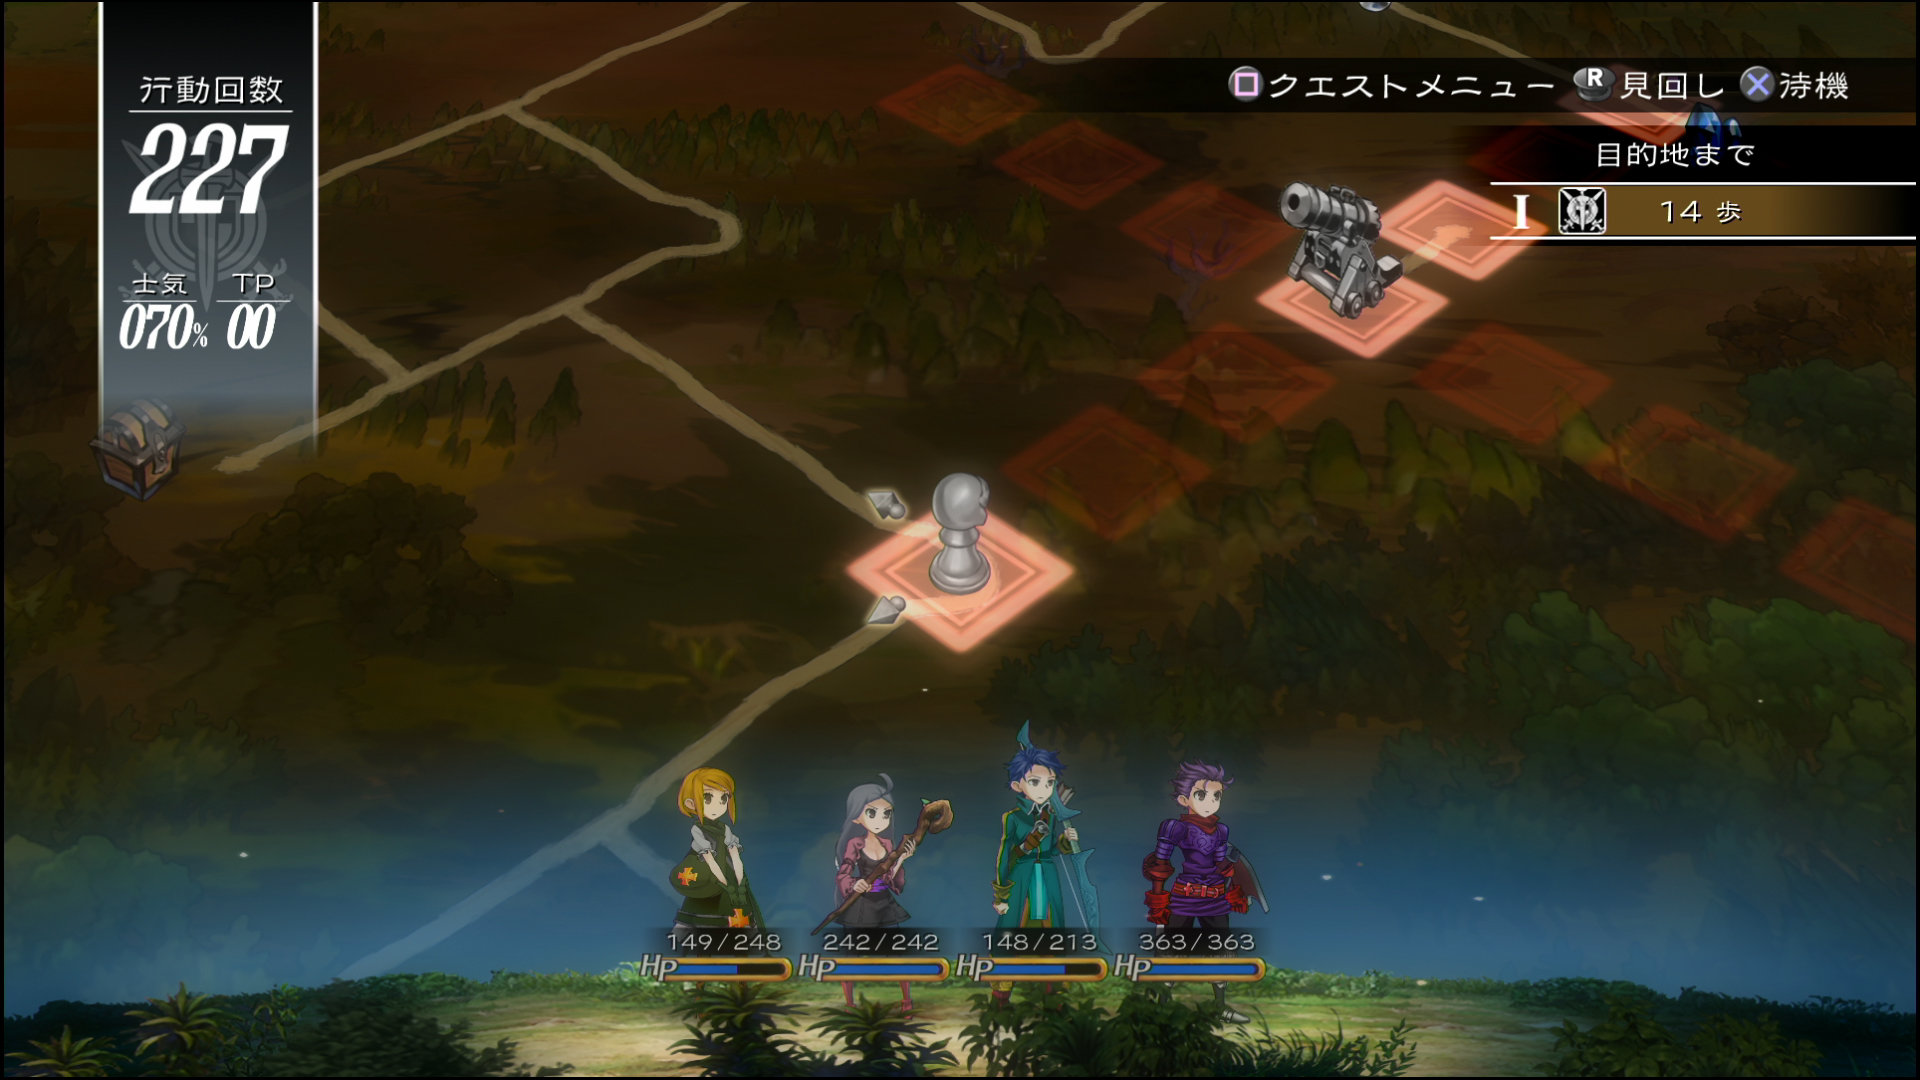 grand-kingdom-screenshot-06-ps4-psvita-u